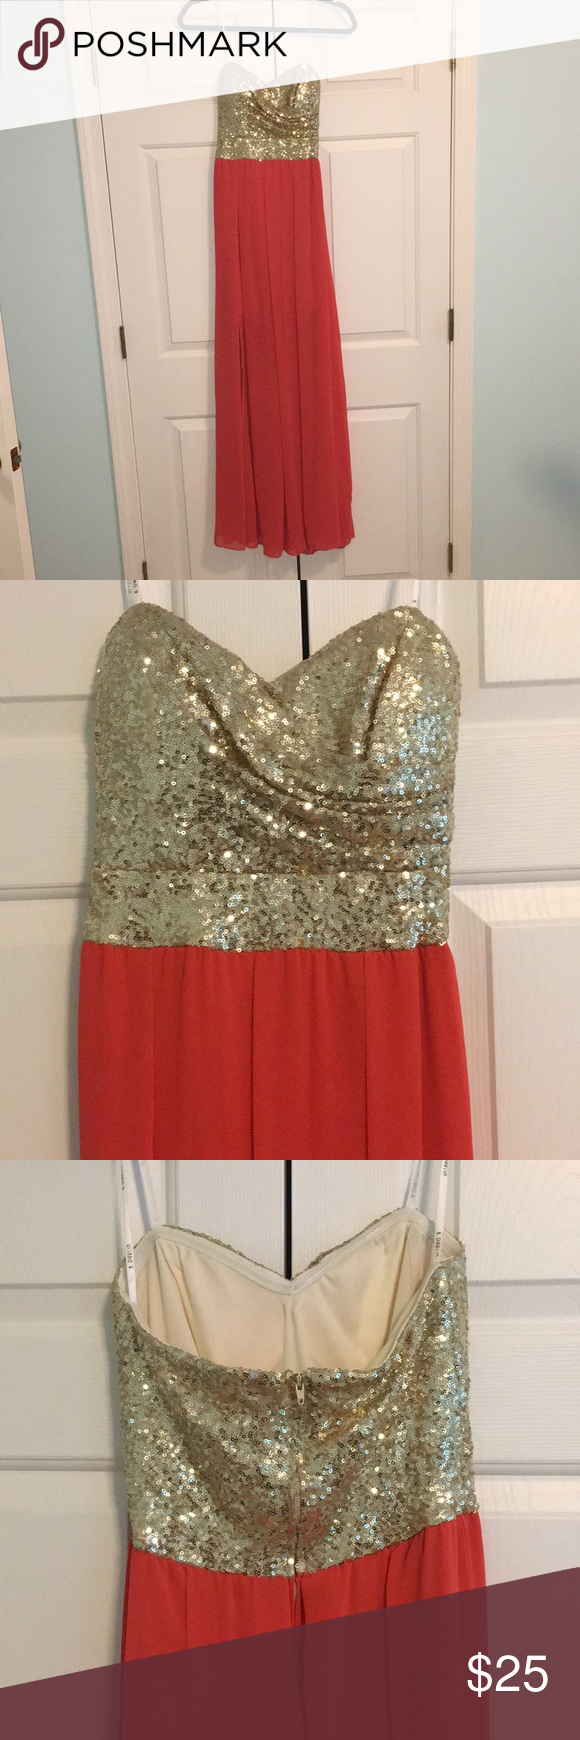 Formalprom dress beautiful dress from macyus strapless gold sequin